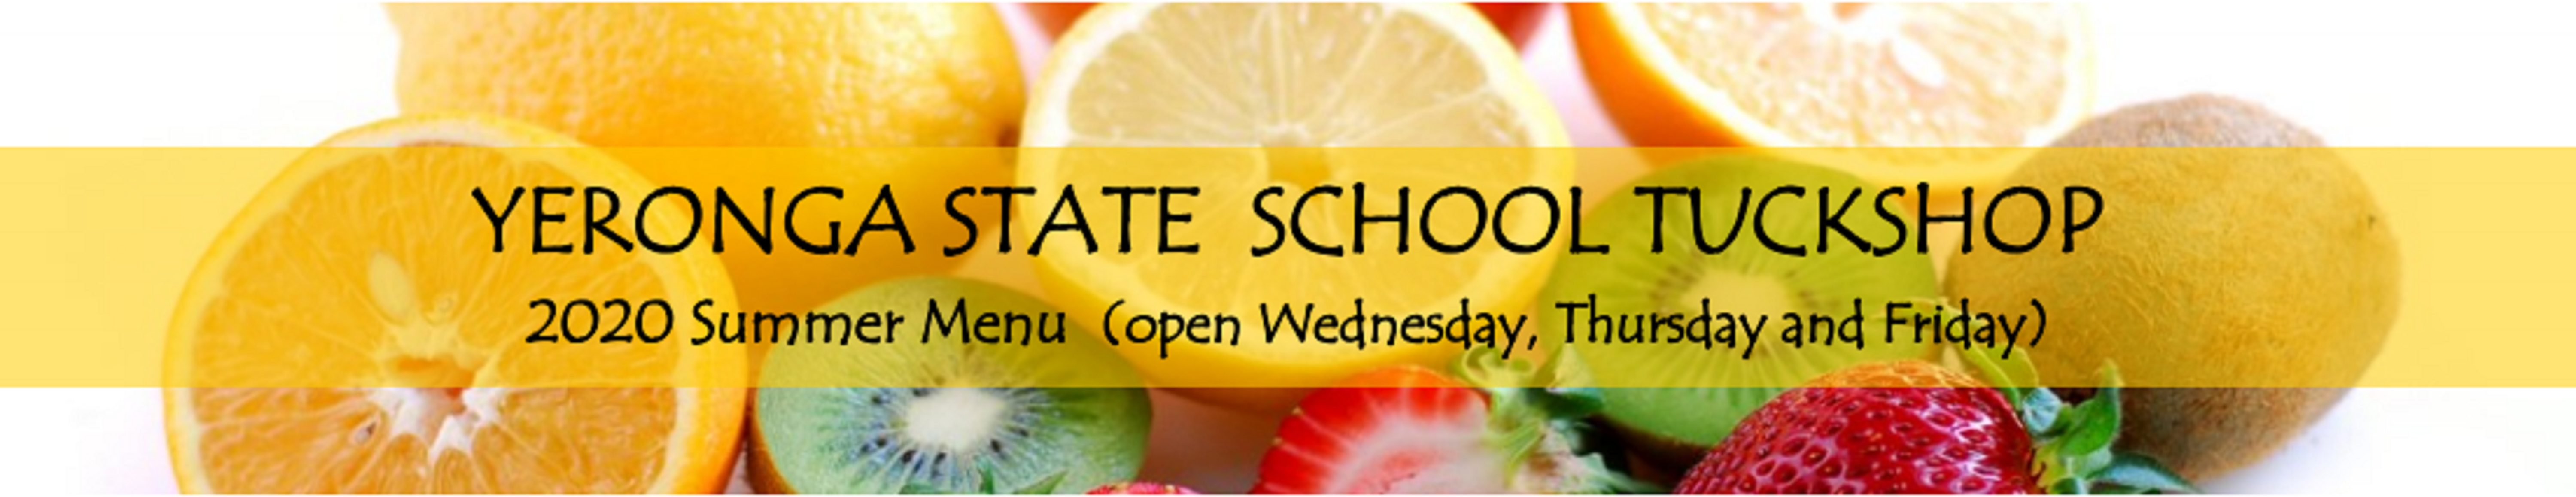 Yeronga-State-School-P-and-C-2020-Summer-menu-header